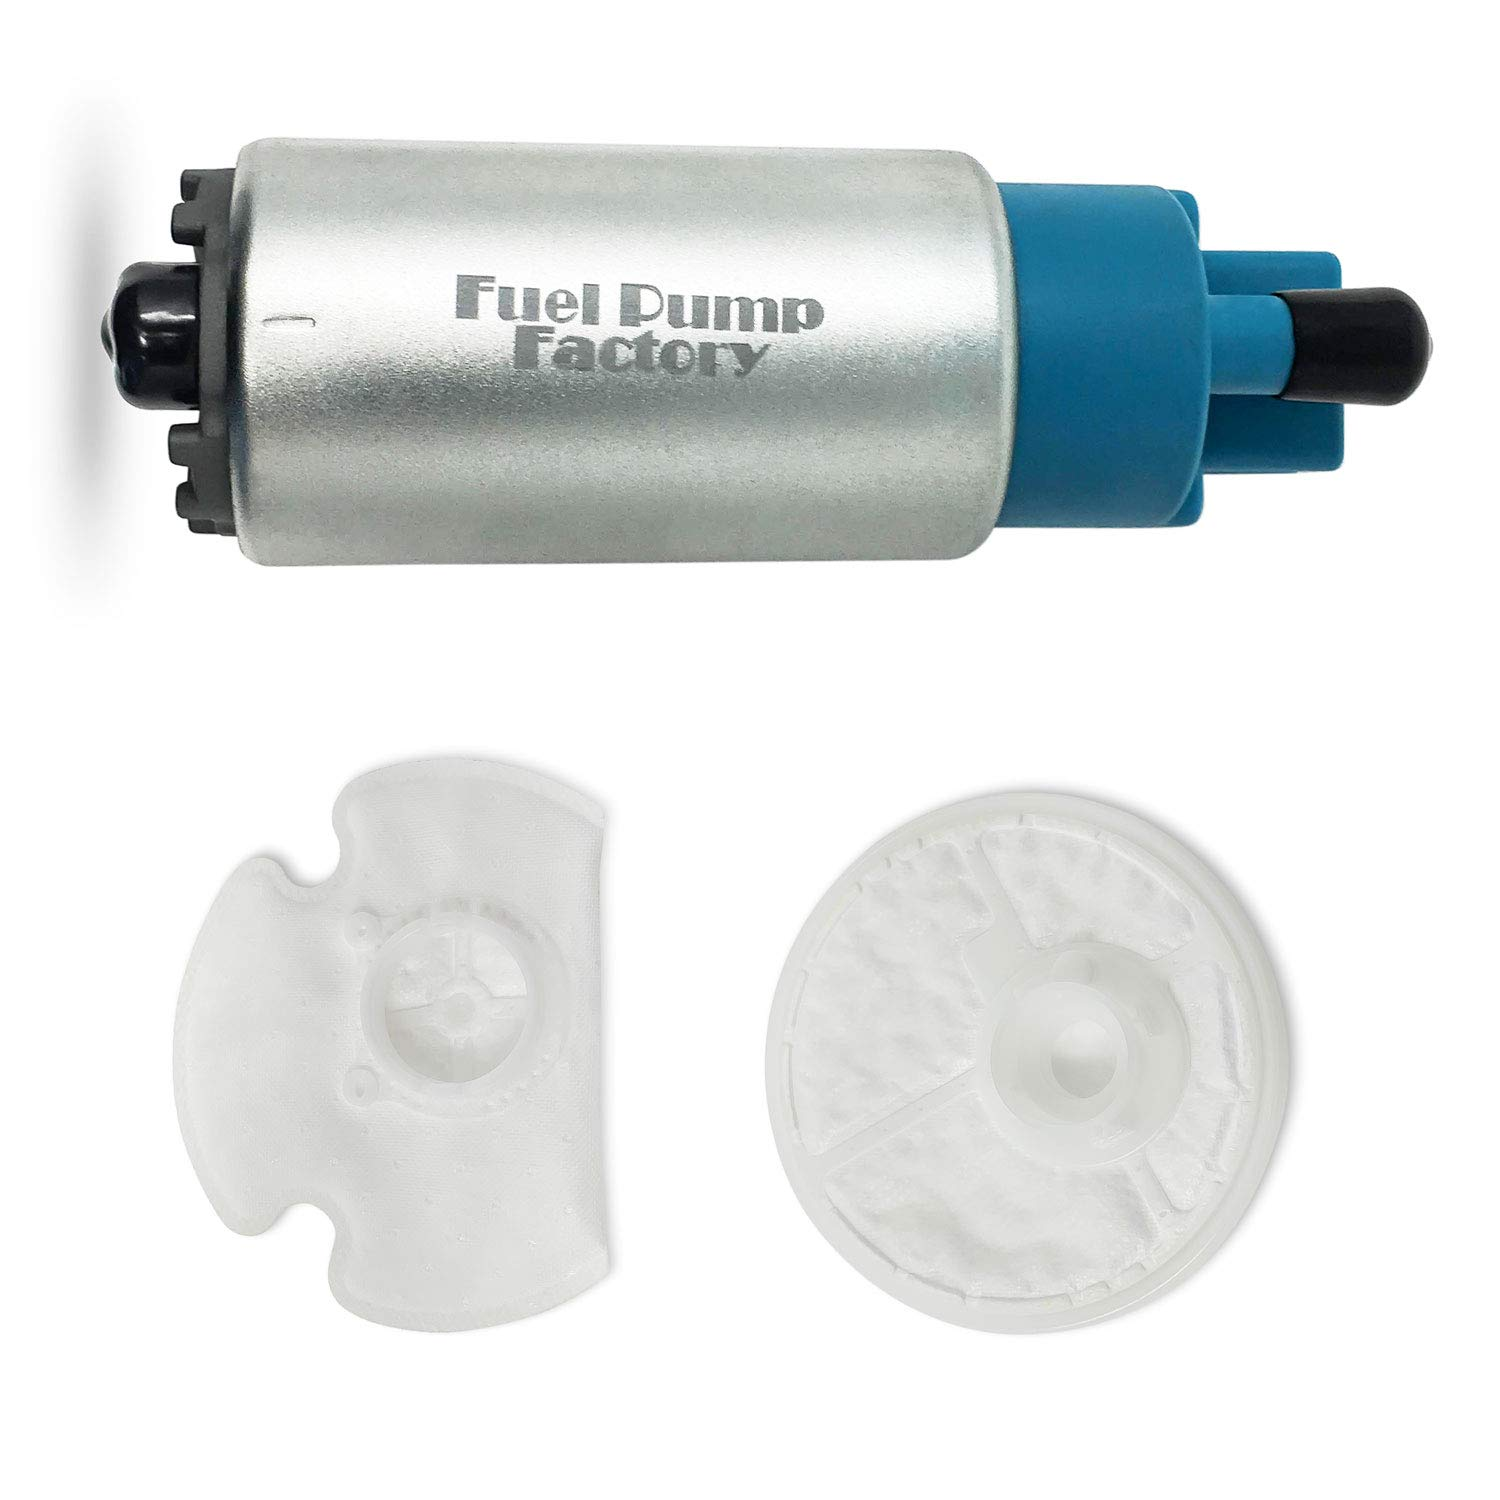 Fuel Pump for 2008-2020 SeaDoo Challenger GTI GTR RXT RXP Replace # 275500734 293250173 275500850 270600102 275500779 GTX GTS